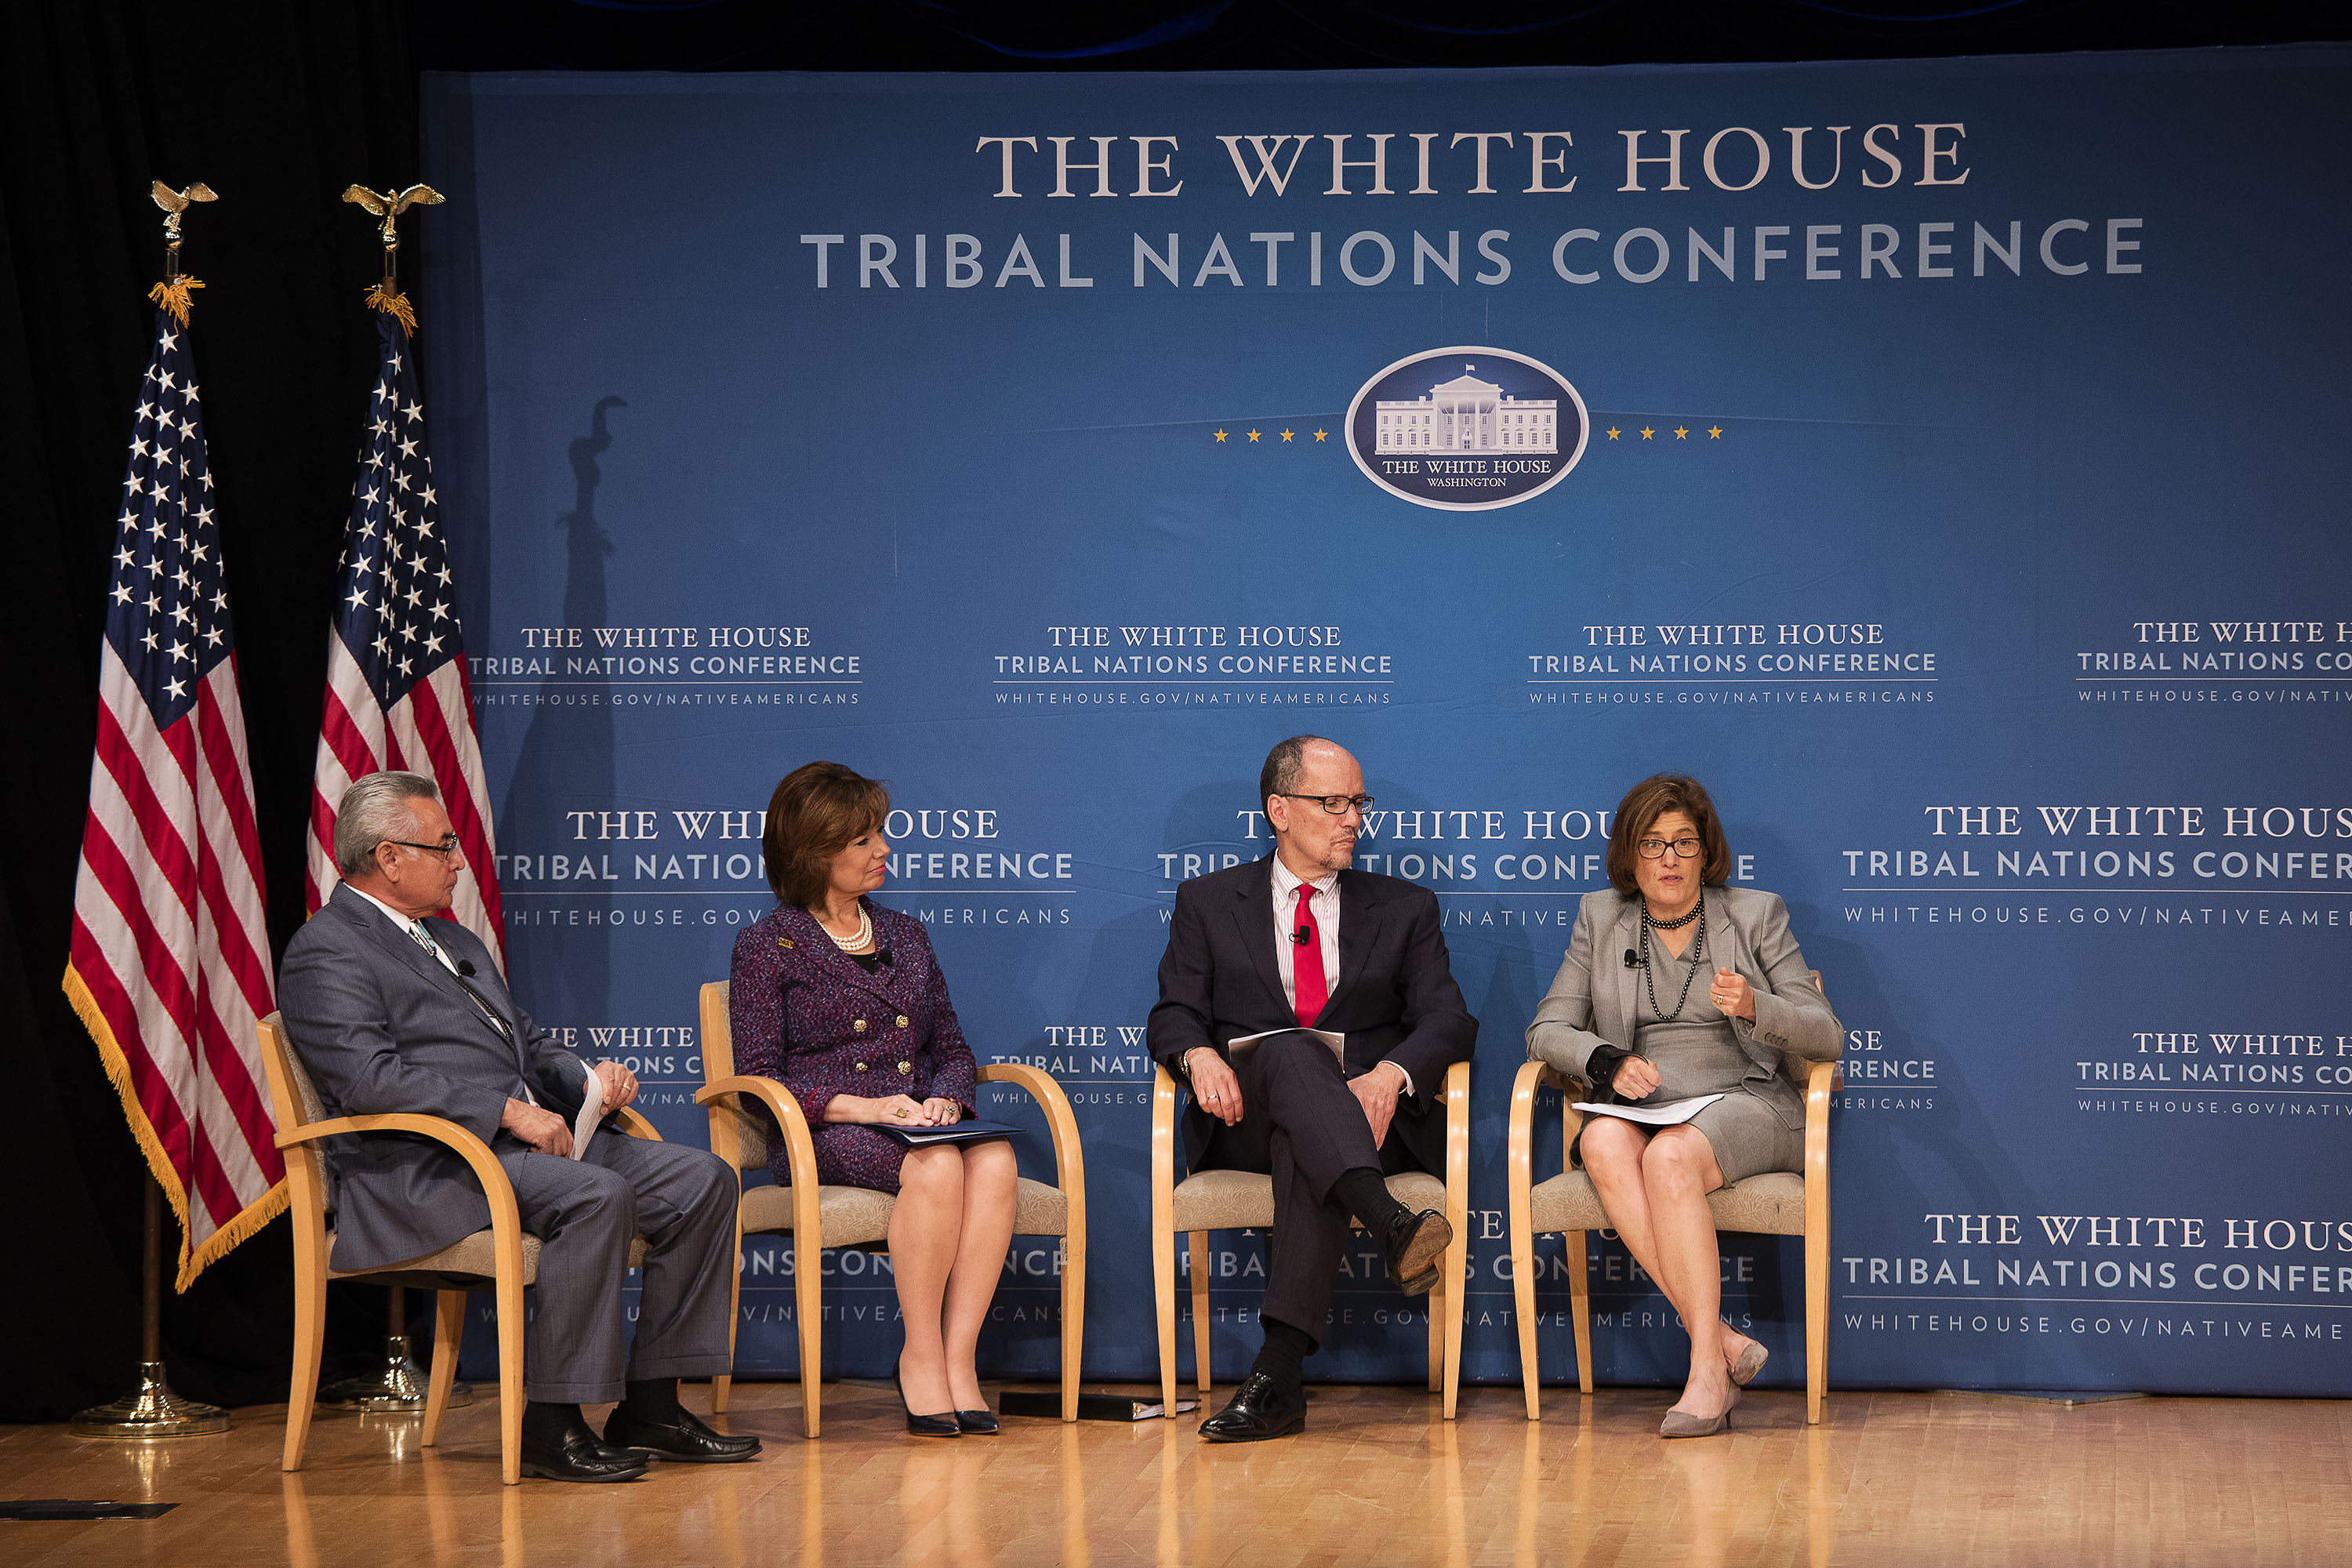 Four people sit on state at White House Tribal Nations Conference. Beth Cobert is the last person on the right.